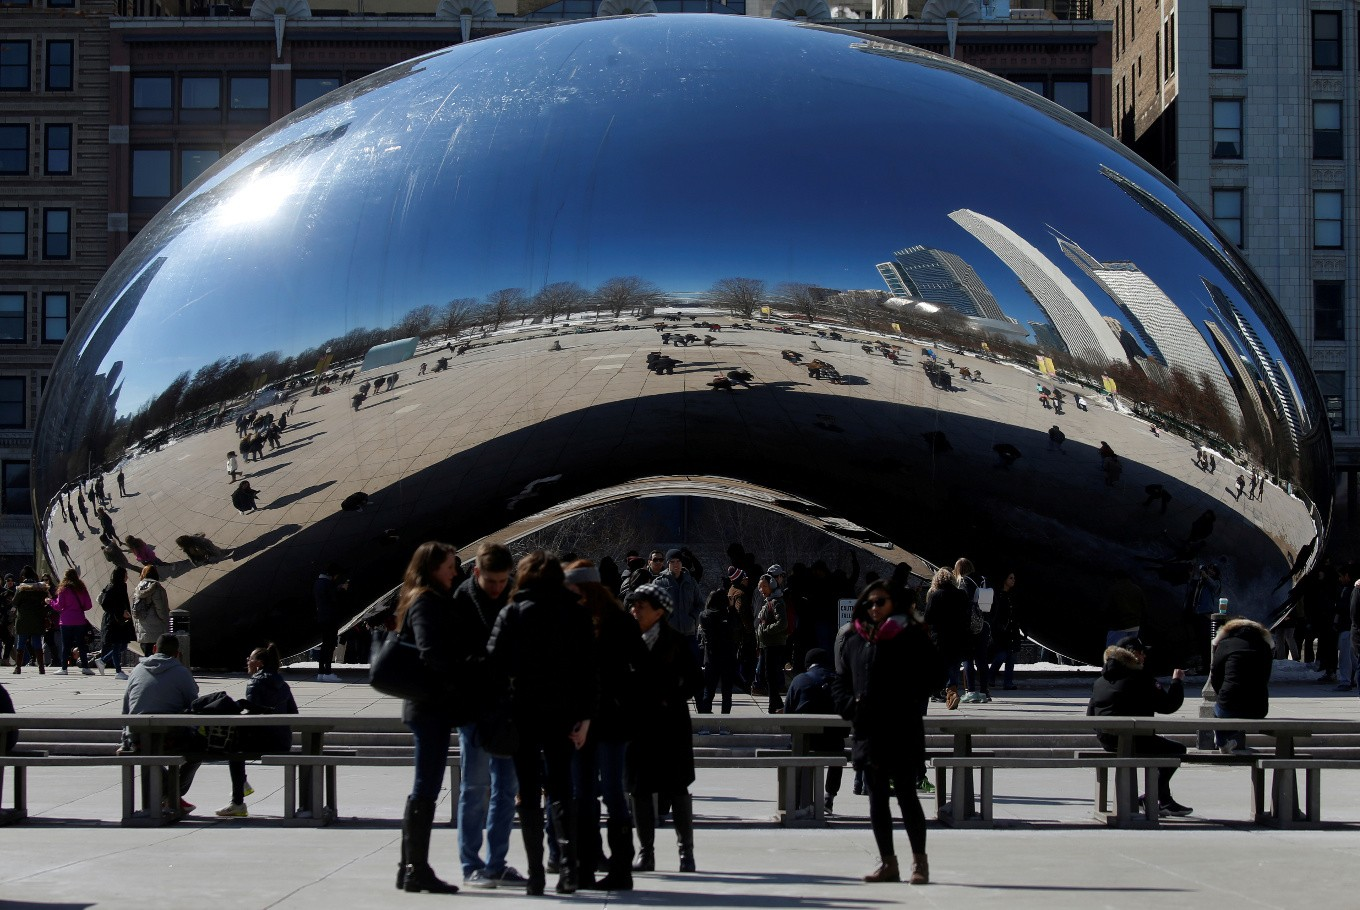 'Cloud Gate' sculptor Kapoor sues NRA over recruiting video